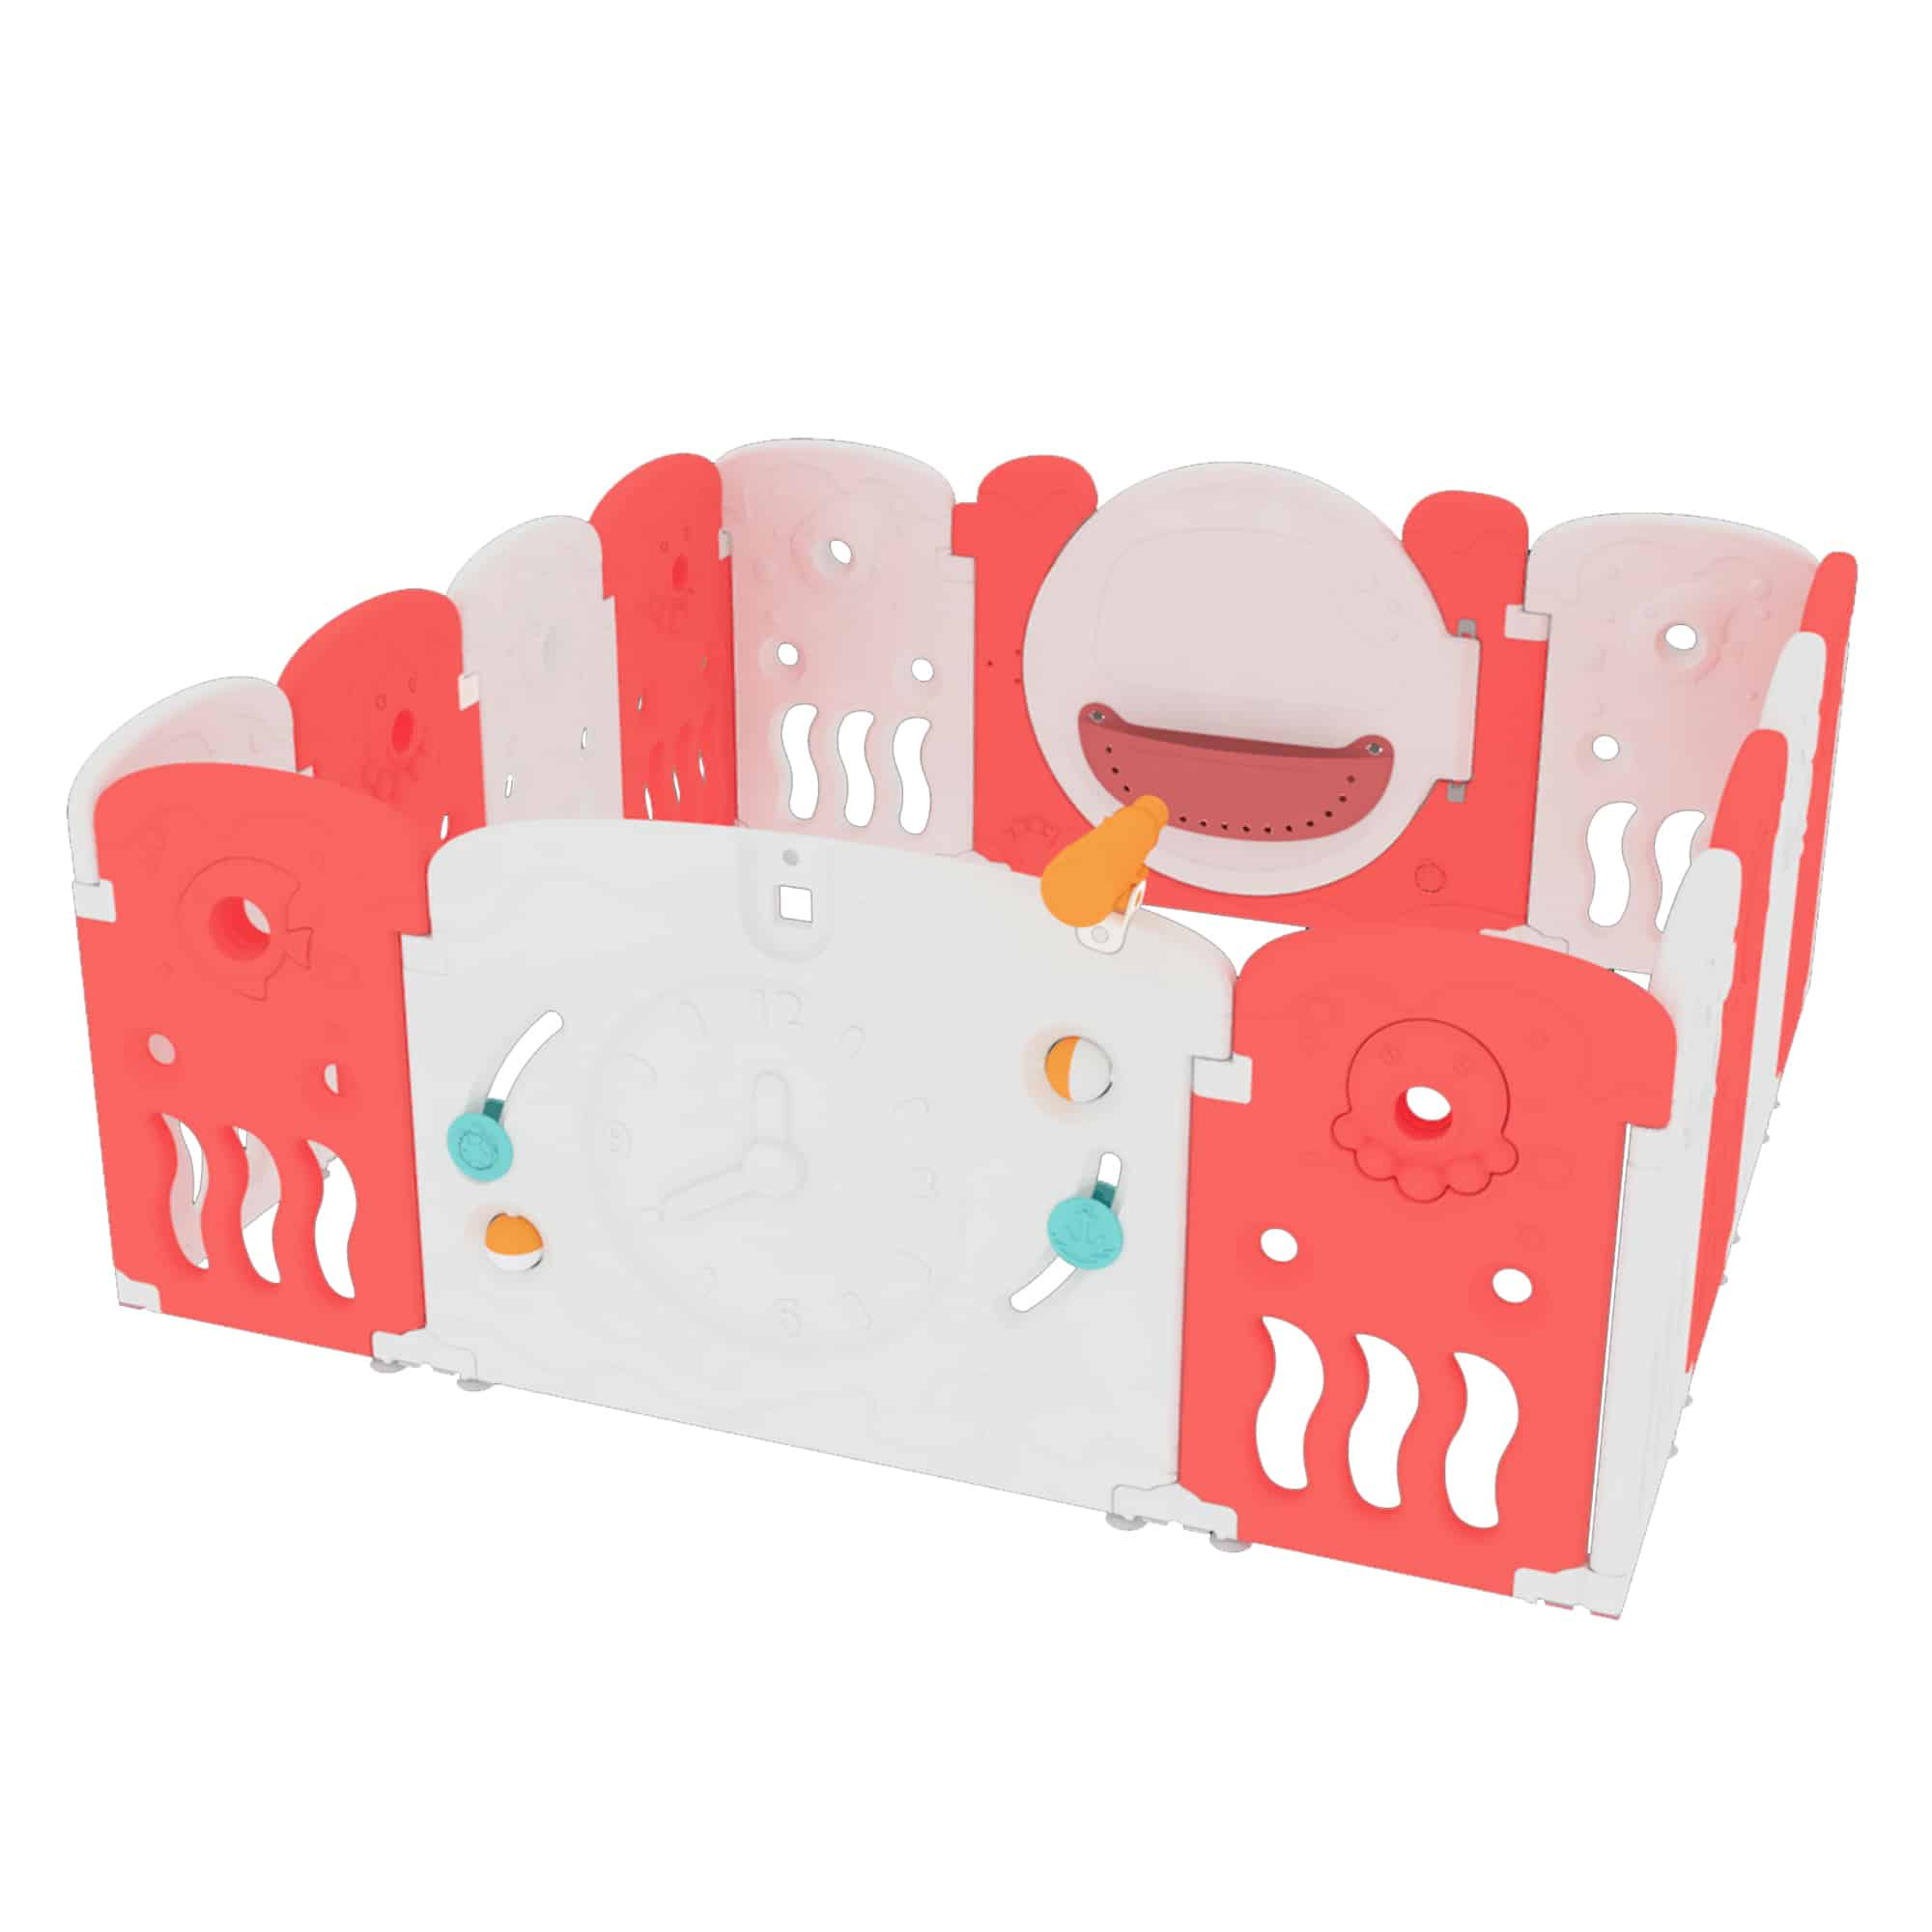 Themed coral playpen for baby and toddler